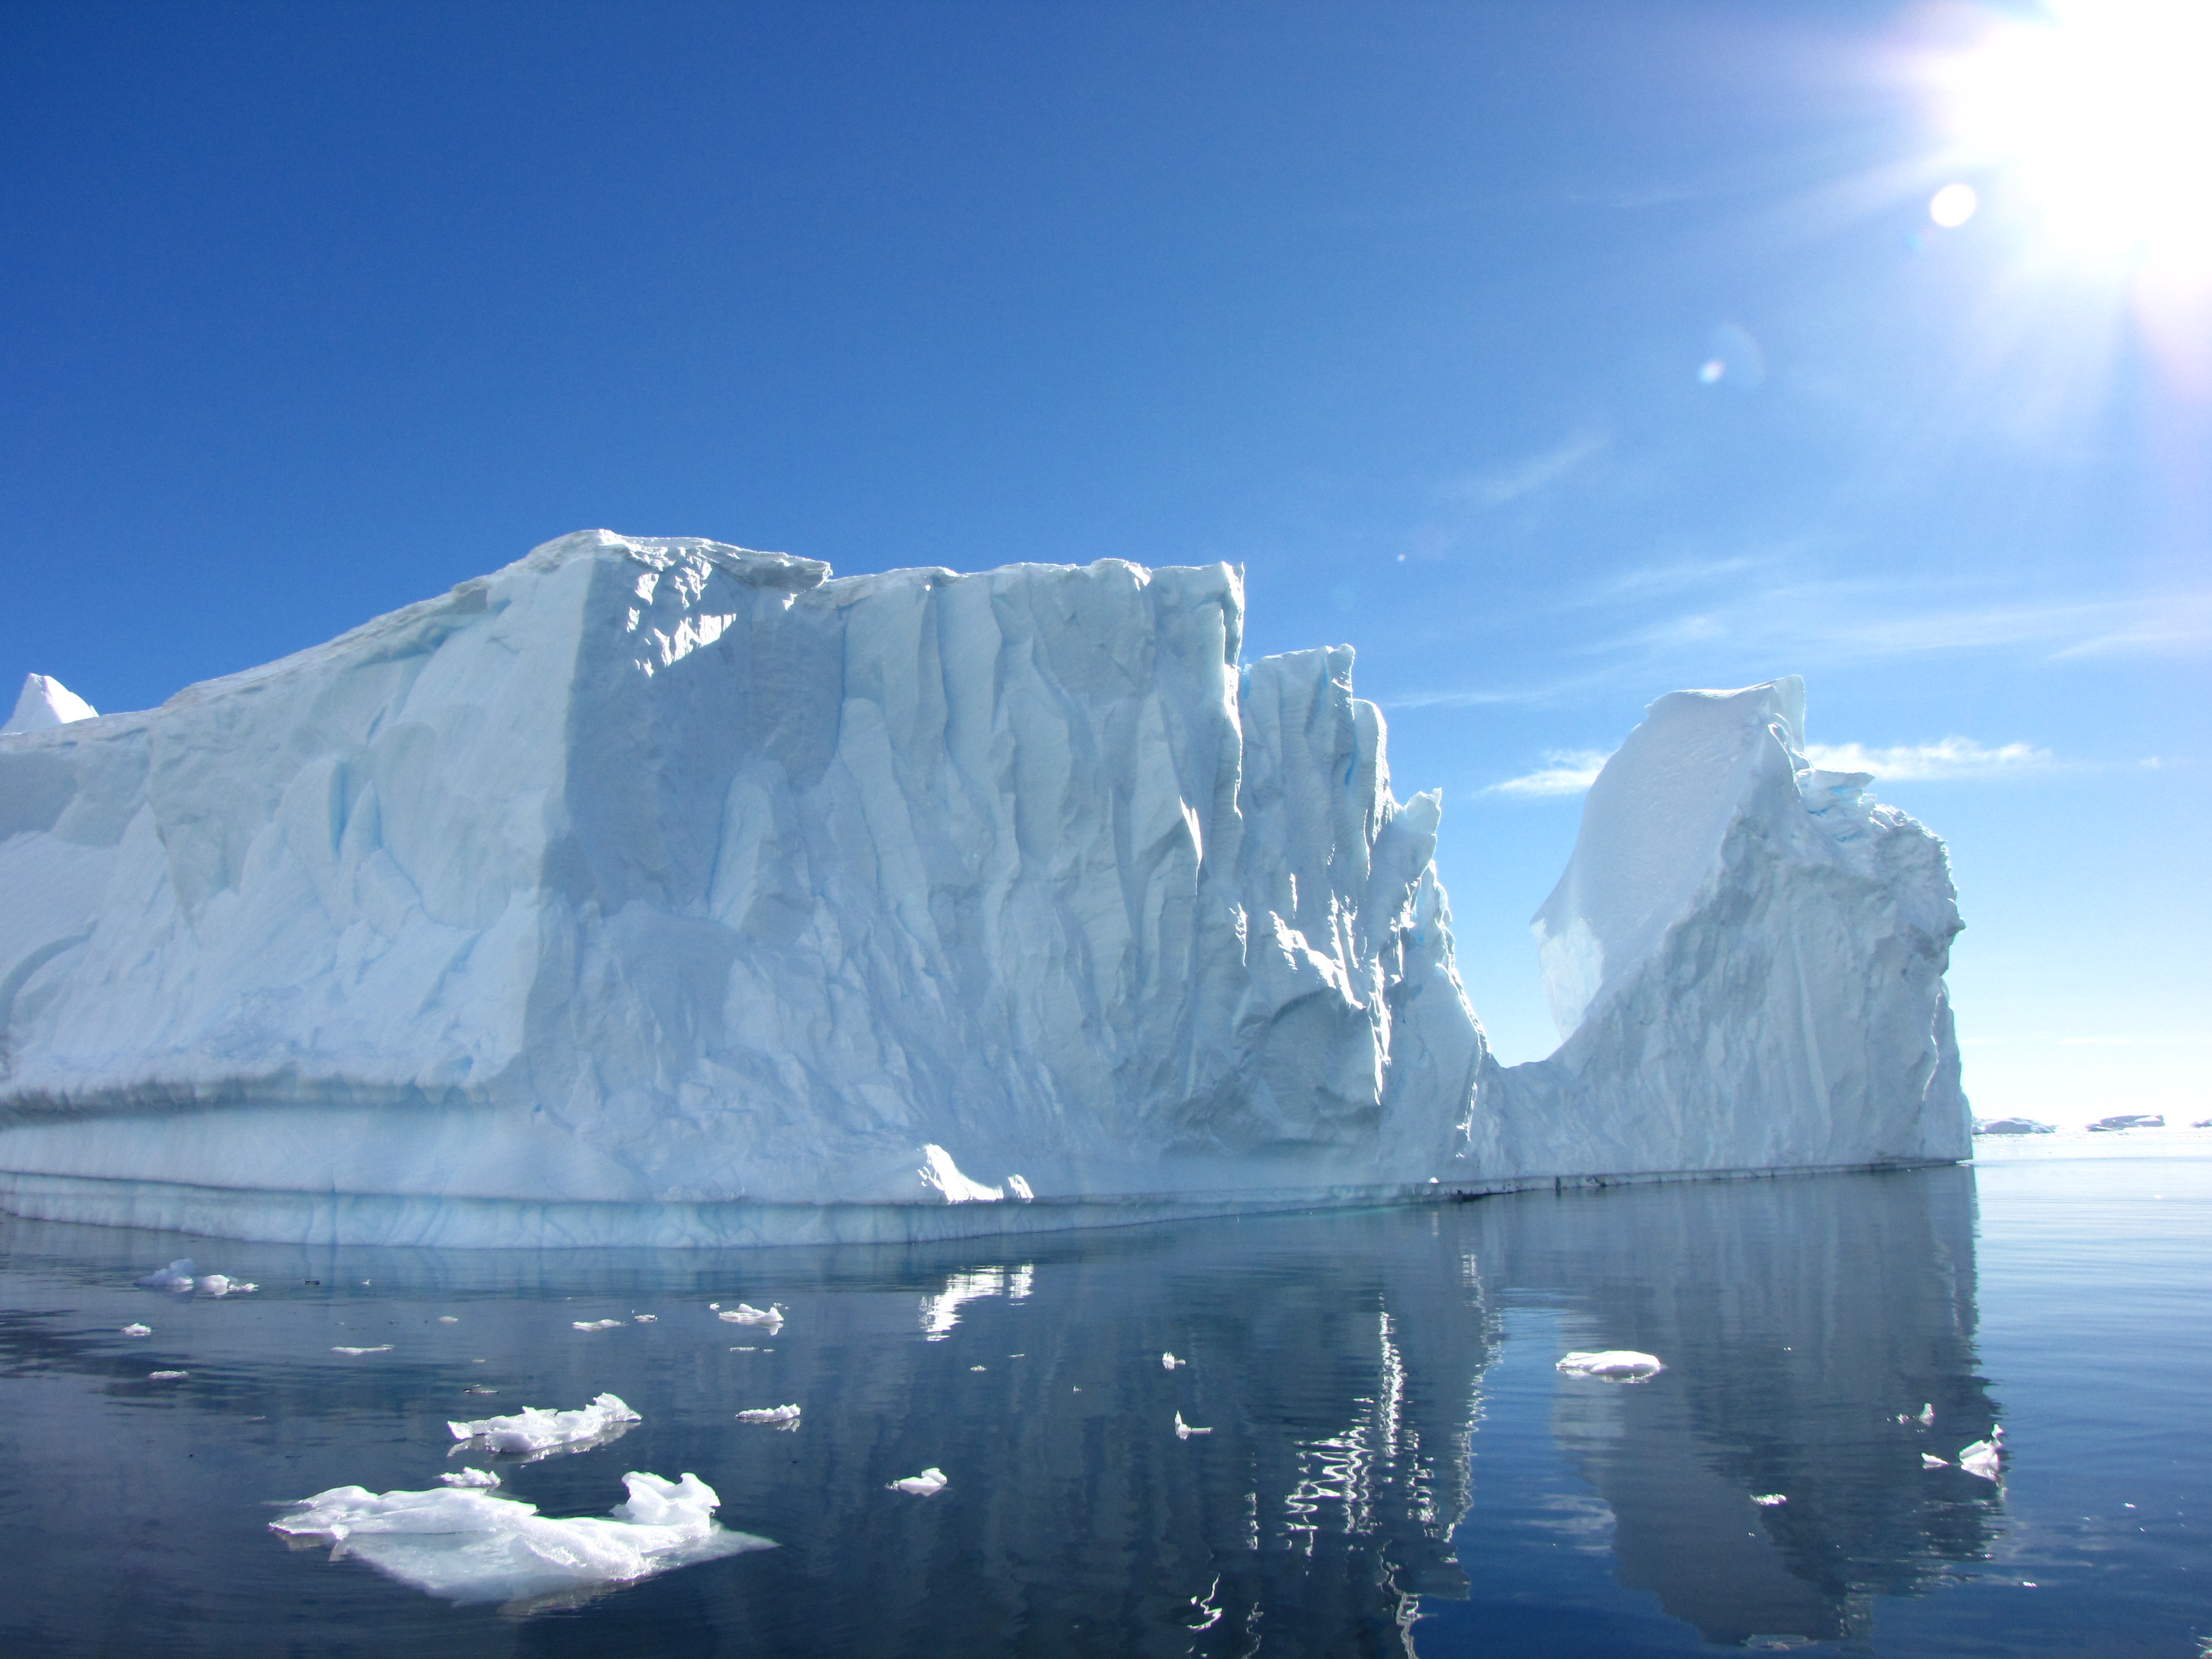 Patagonia South America >> It's okay to be crazy - Antarctica - Your time is now